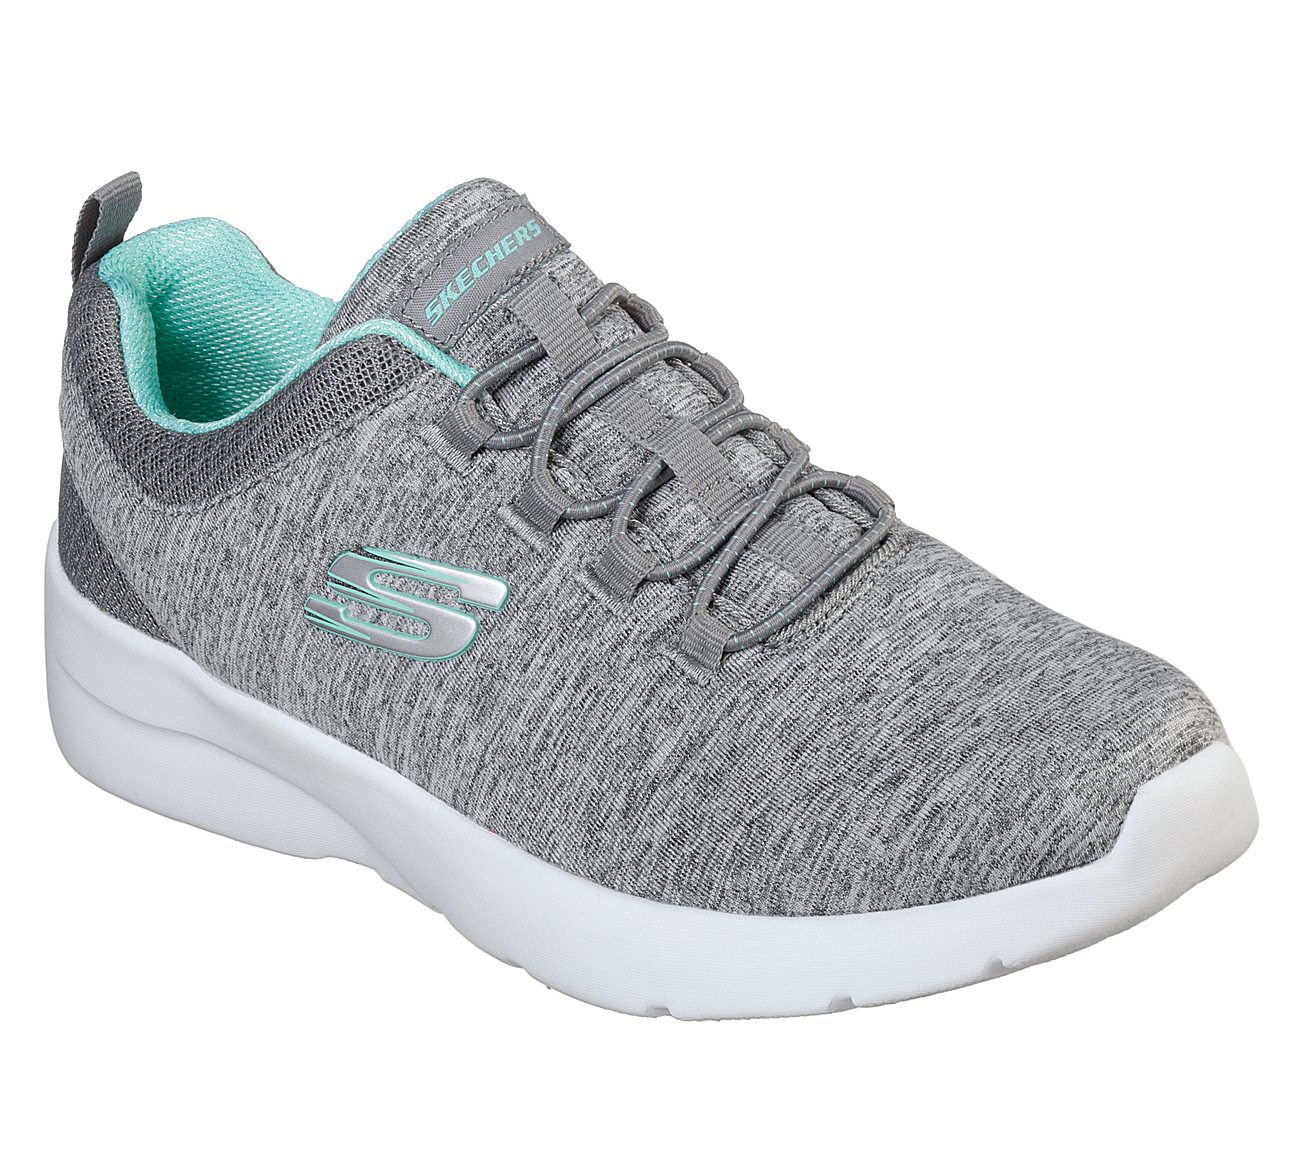 483fa12ceb284a Buy SKECHERS Dynamight 2.0 - In a Flash SKECHERS Sport Shoes only £54.00